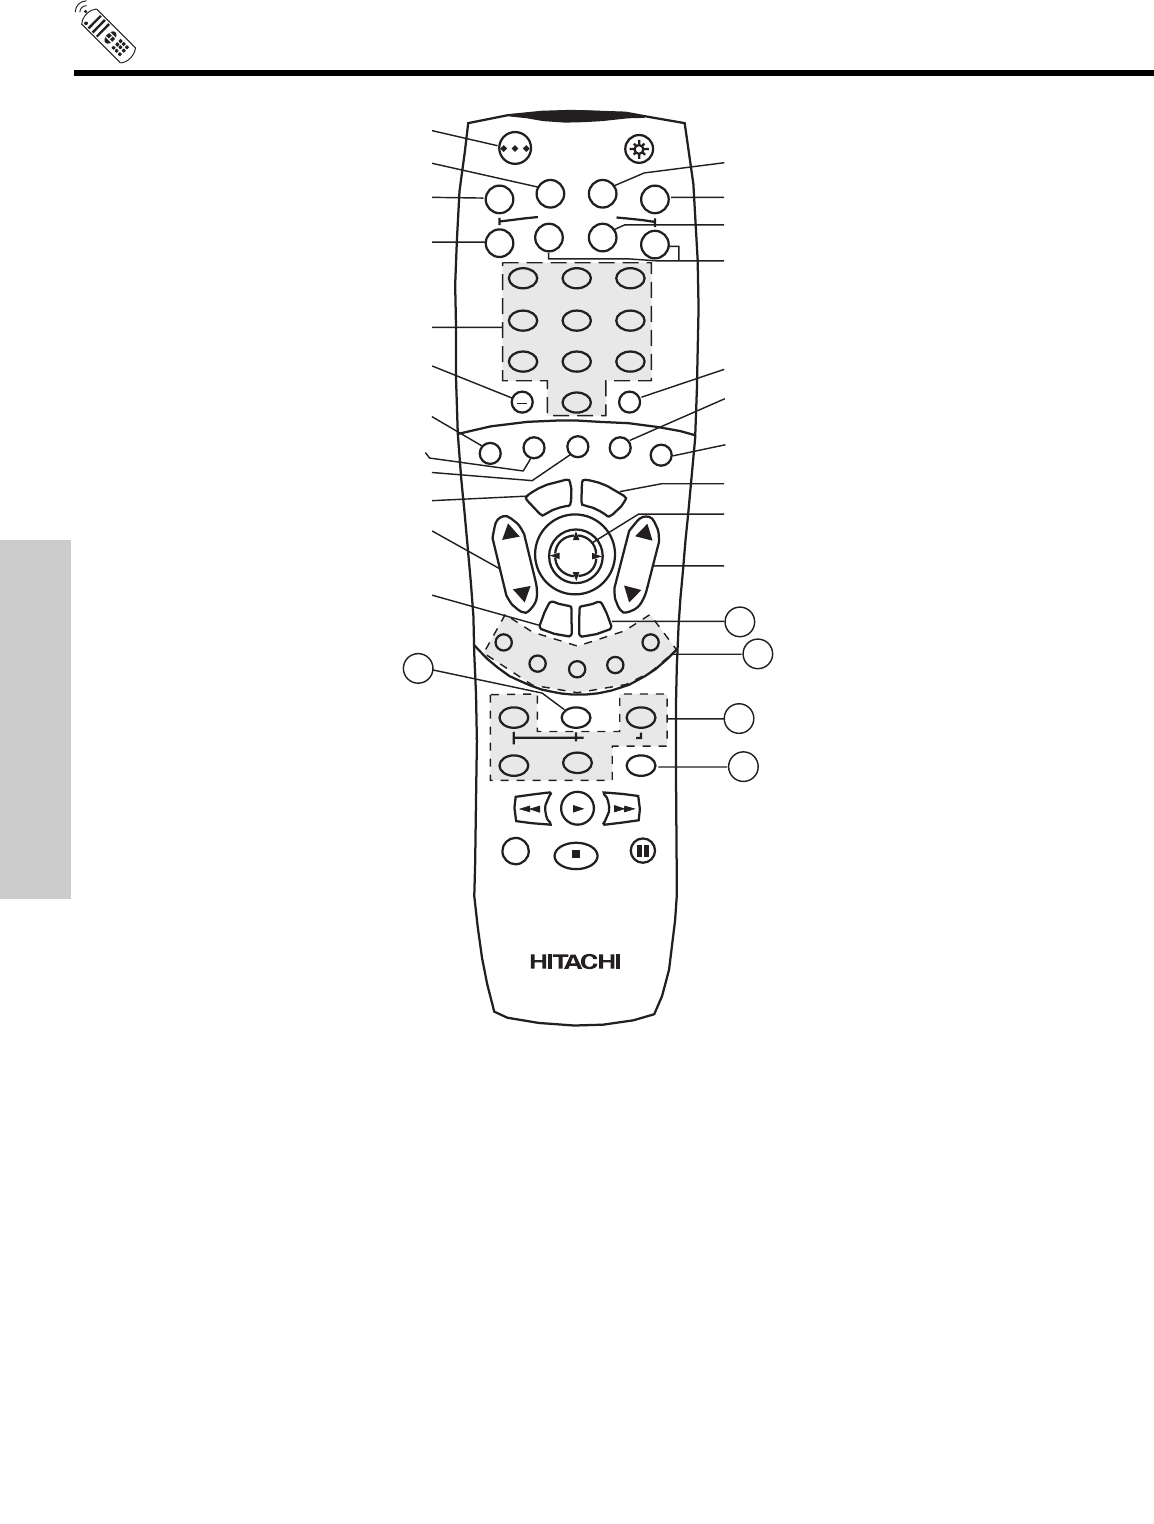 Page 24 of Hitachi Projection Television 60V500A User